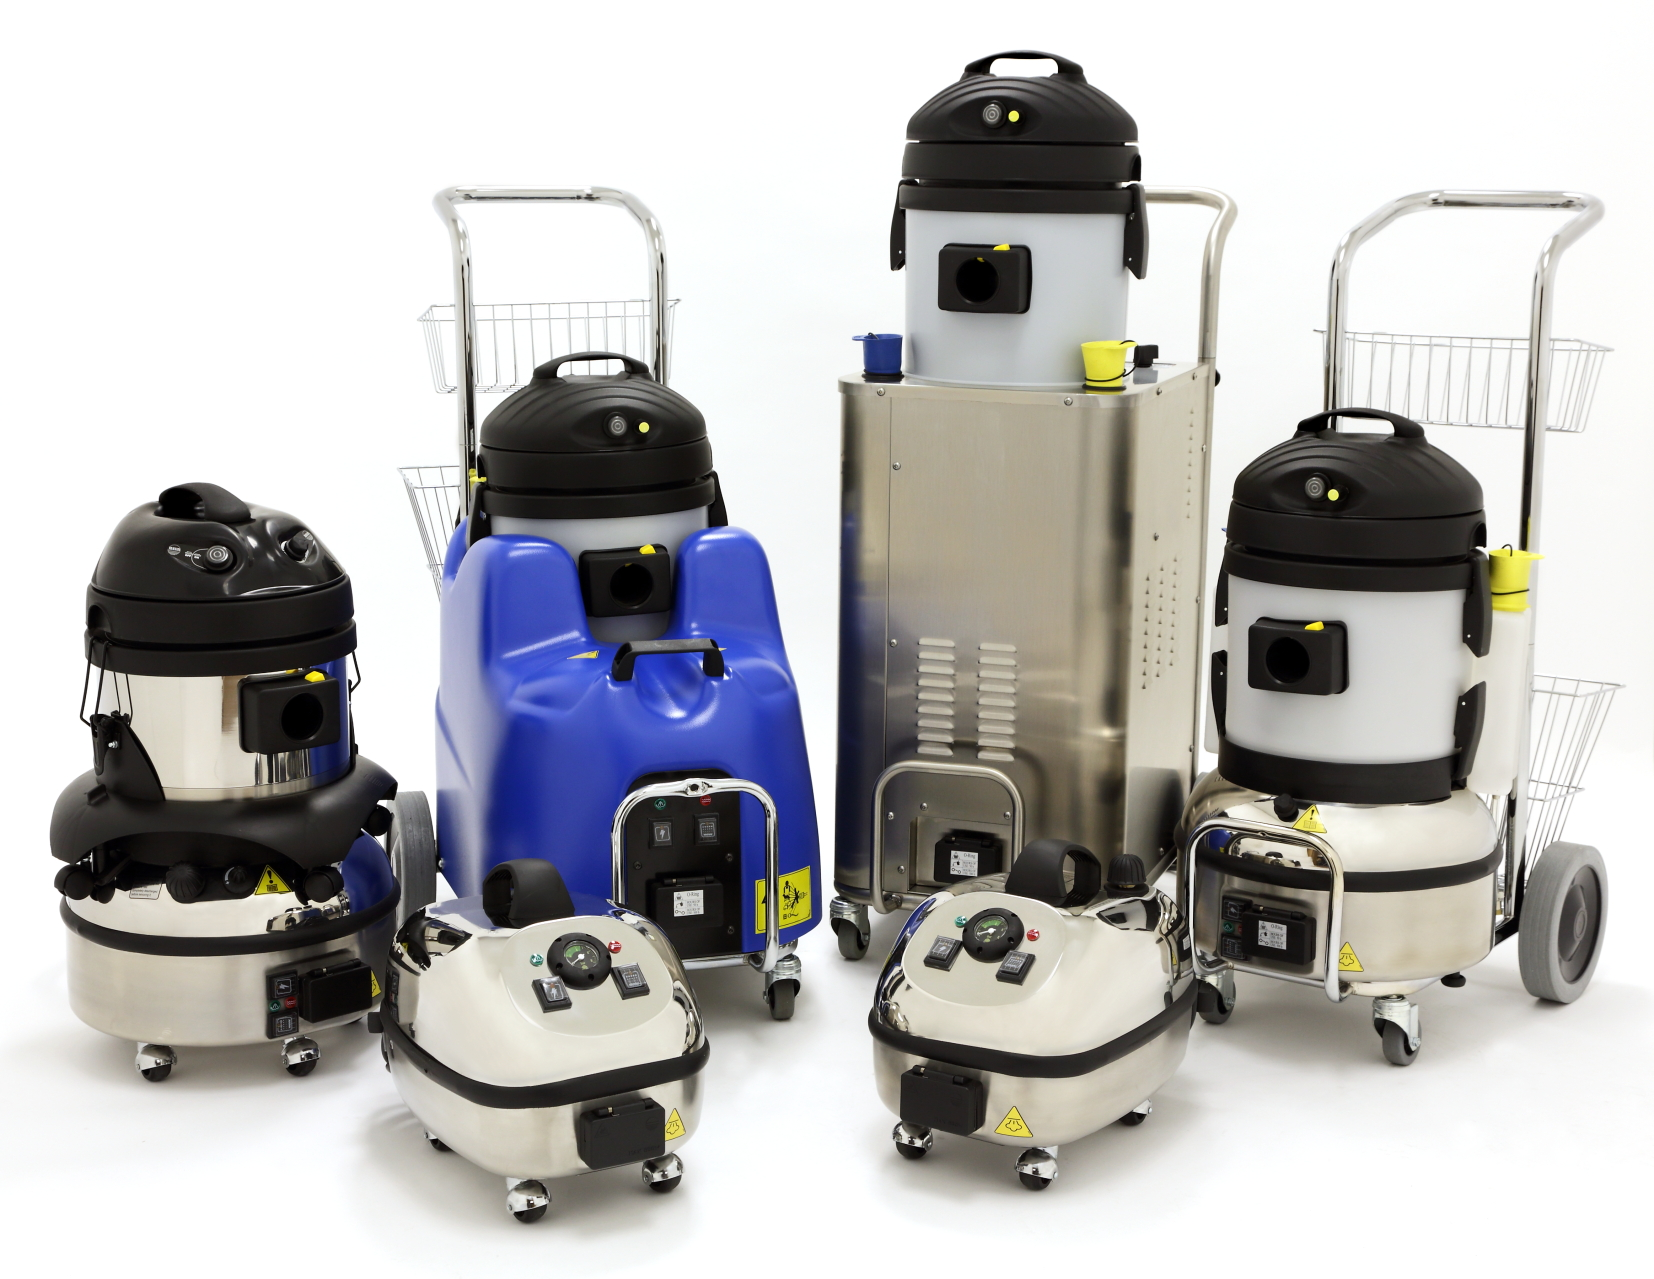 Daimer Announces Vapor Steam Cleaner Models And Explosive